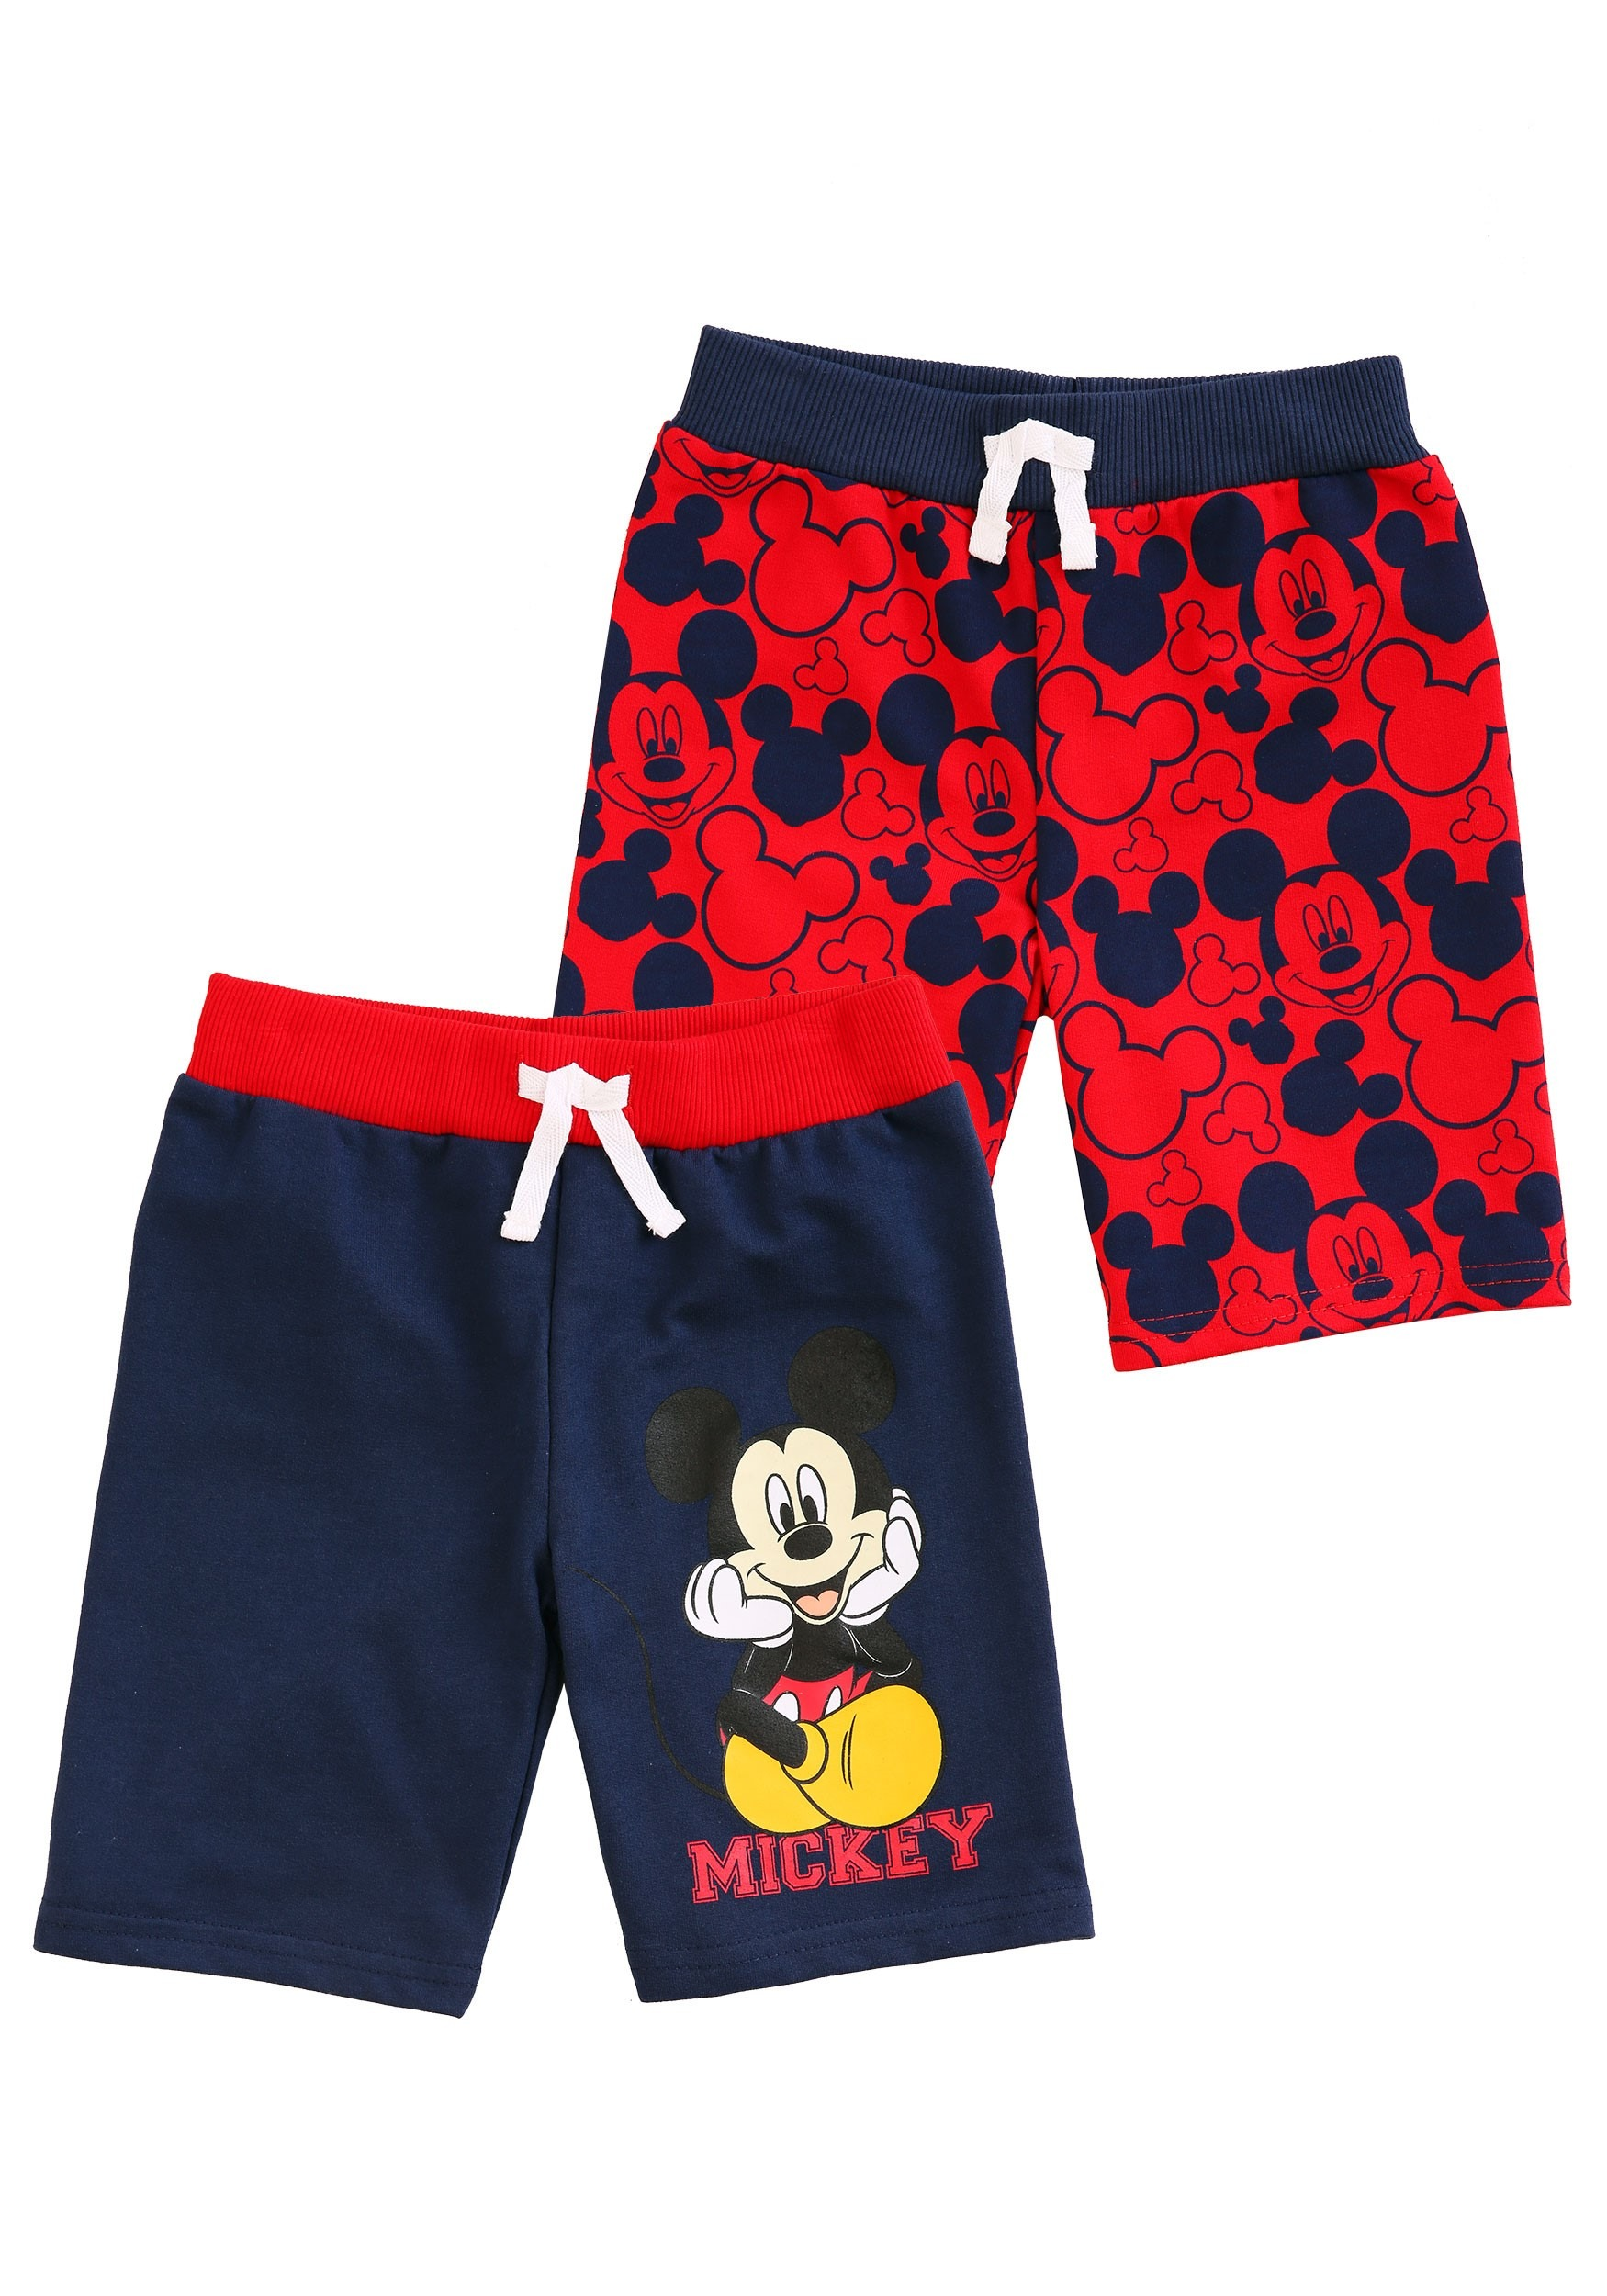 3486e3400dda Mickey Mouse Faces Shorts 2-Pack For Toddler Boys